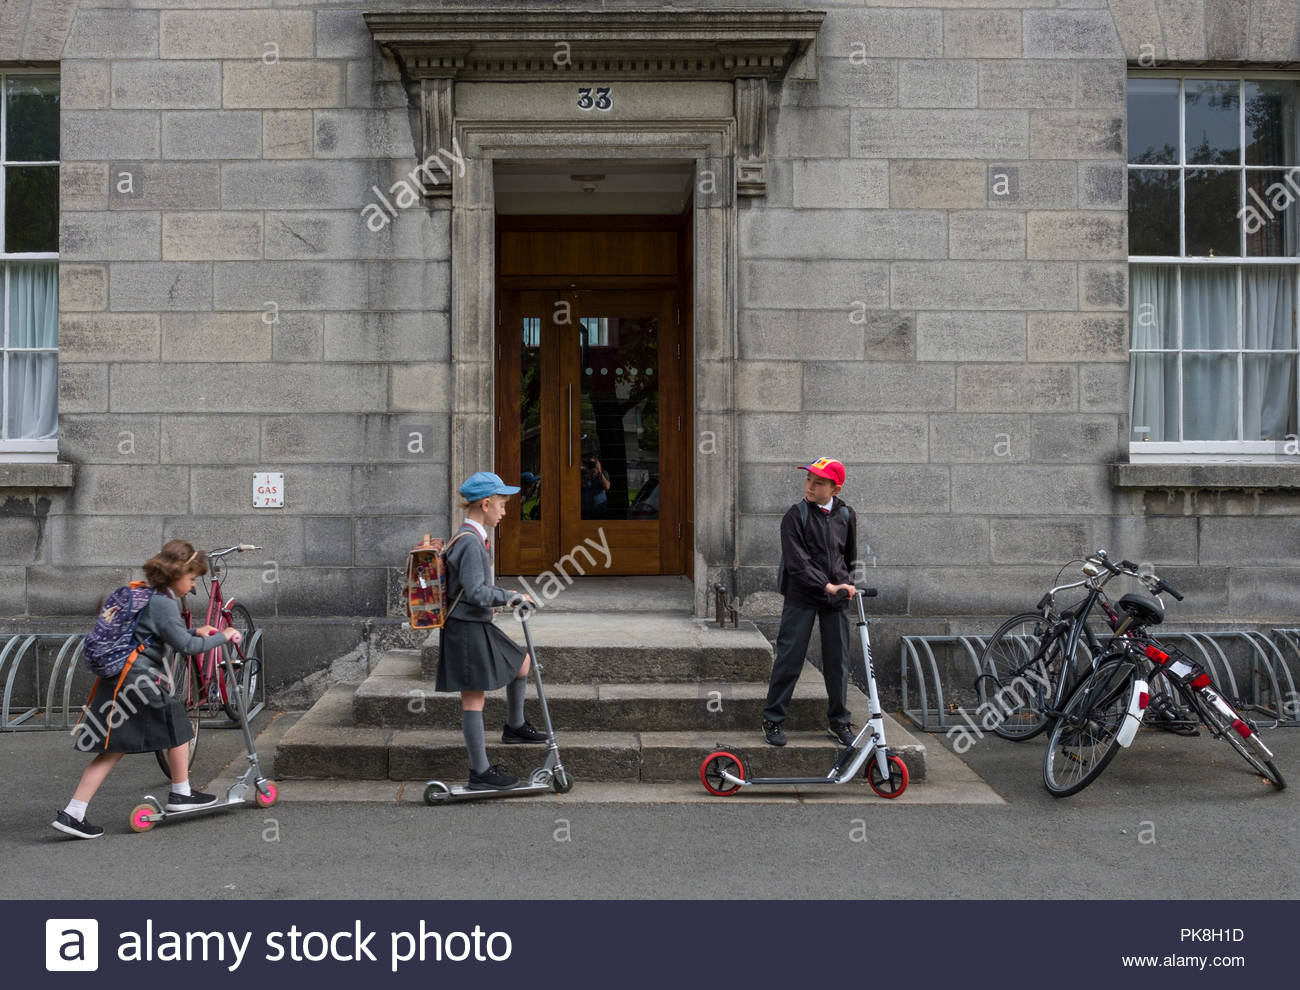 Three young children wearing school uniforms riding scooters stopped in front of House 33 on the Trinity College, Dublin, Leinster, Ireland - Stock Image